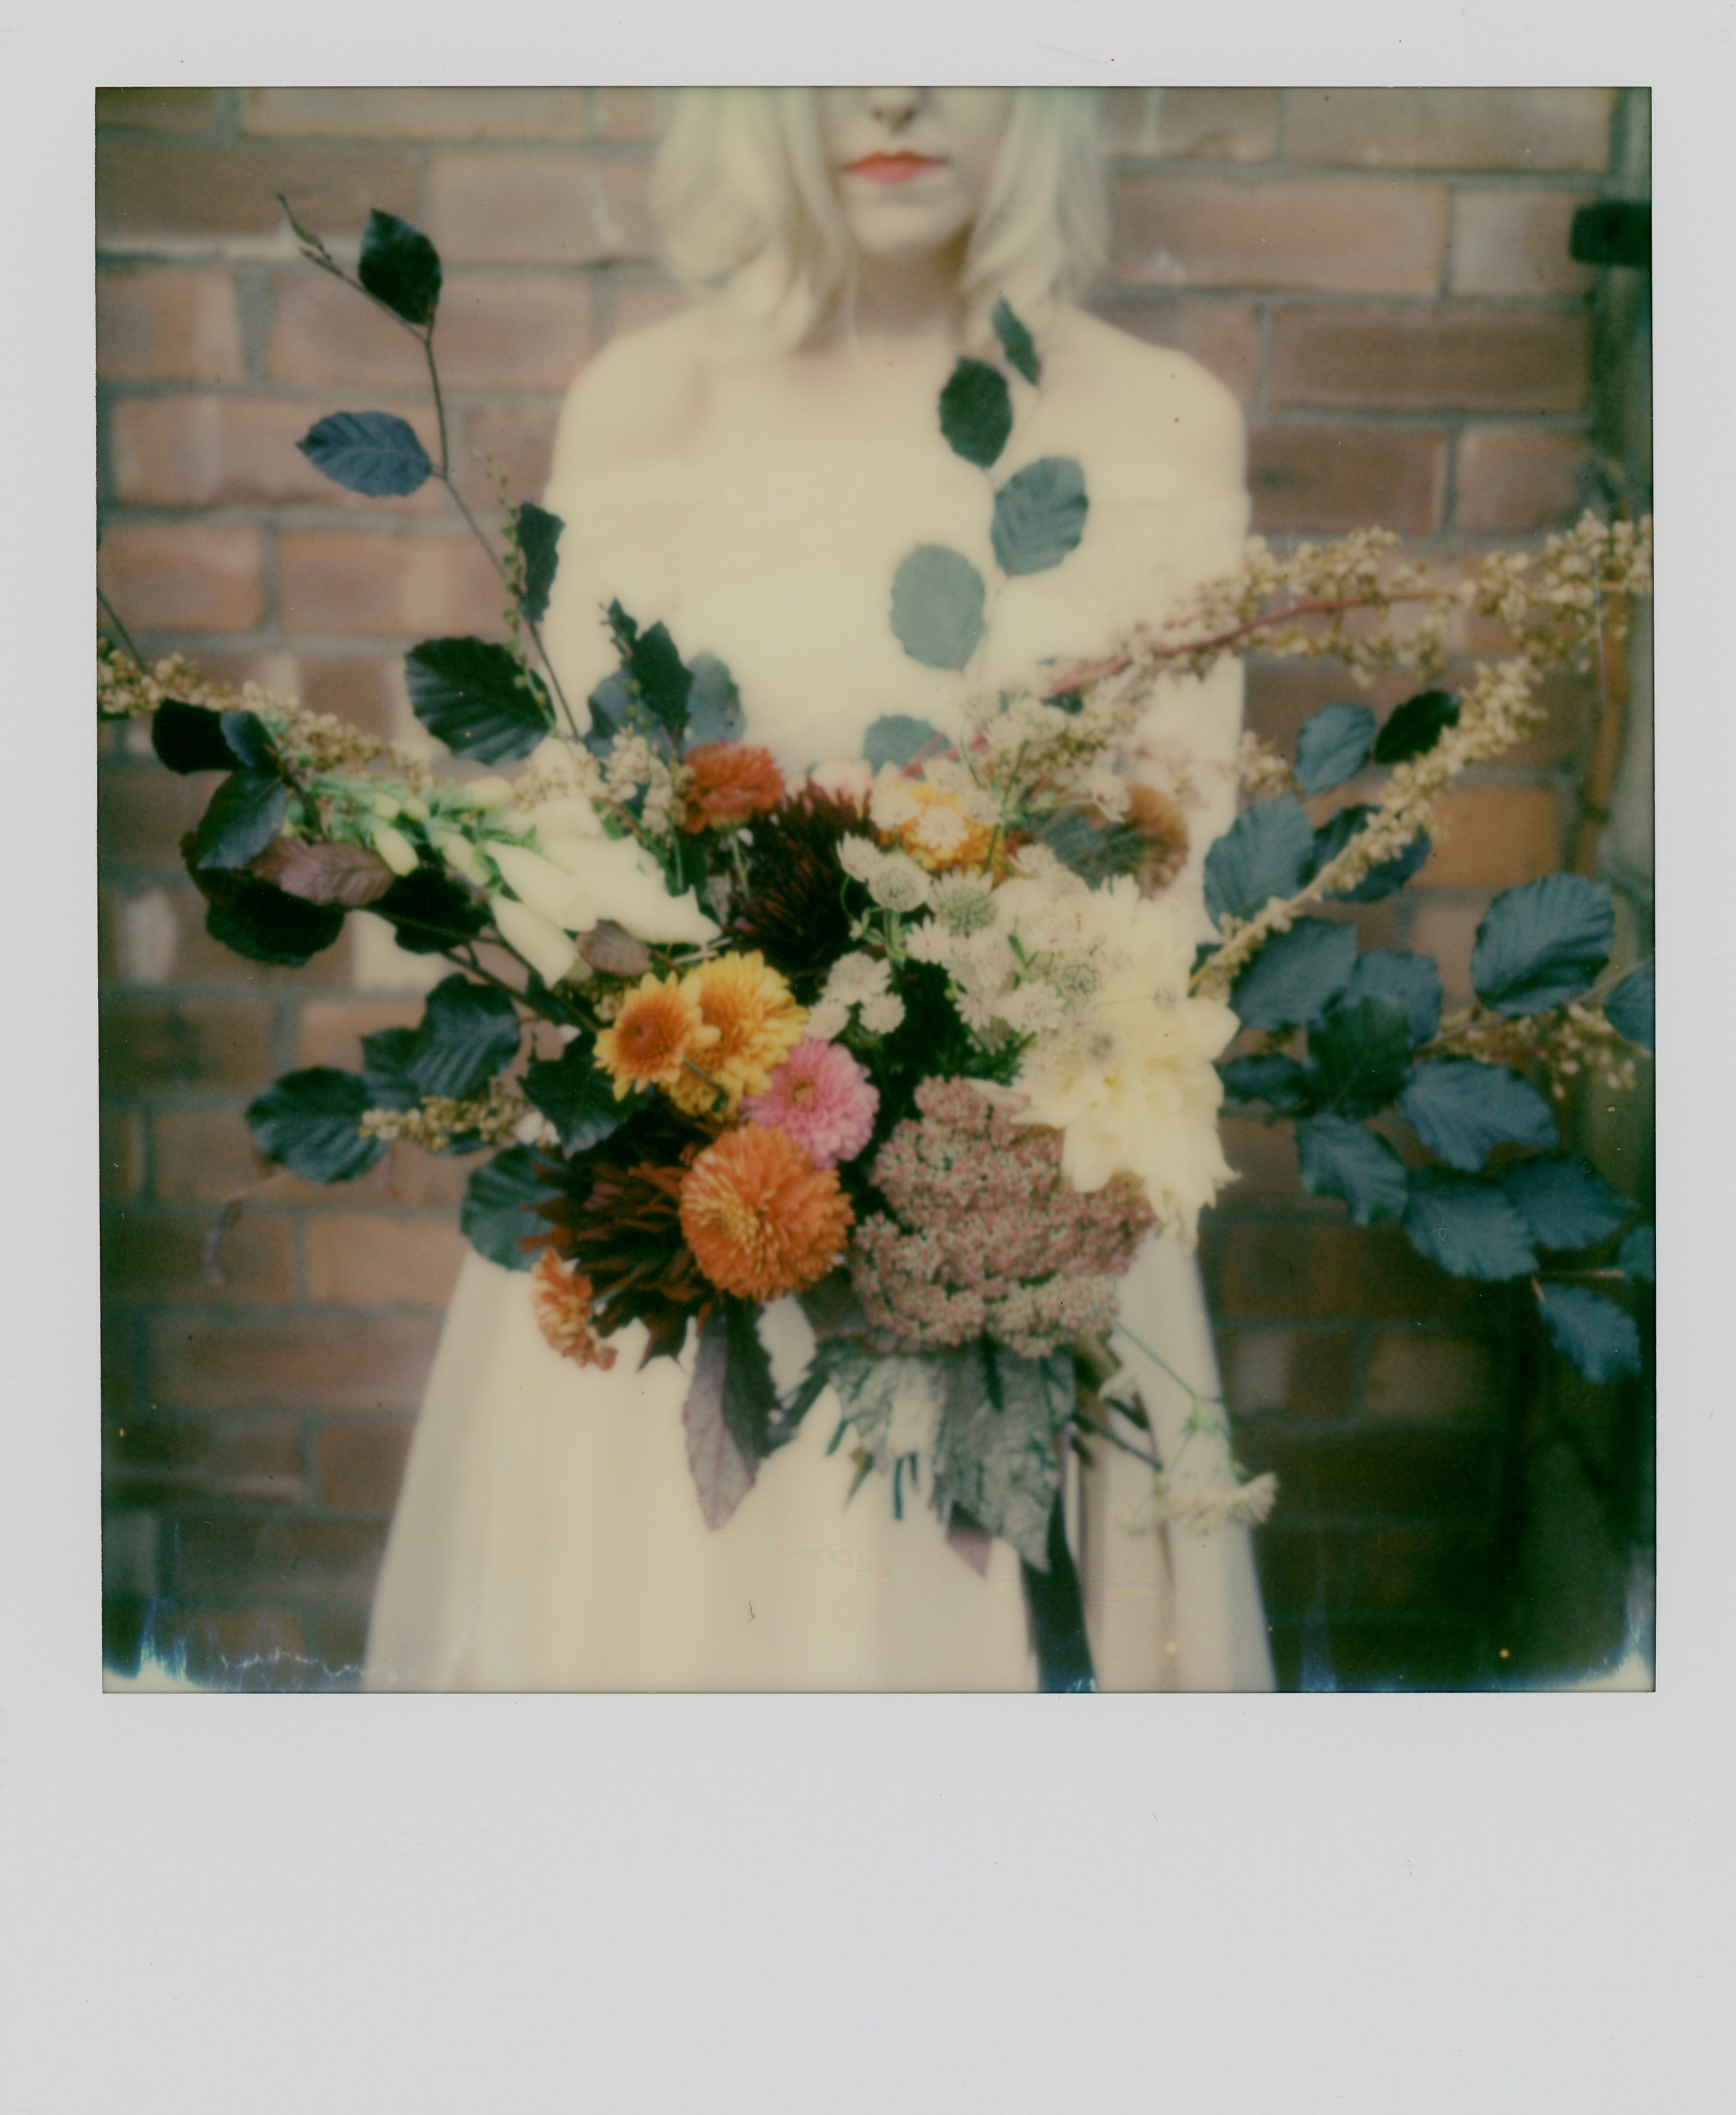 Colour SX70 Polaroid of Martha with her Autumnal bouquet held face on. Martha wears Wilderness Bride indie wedding dress